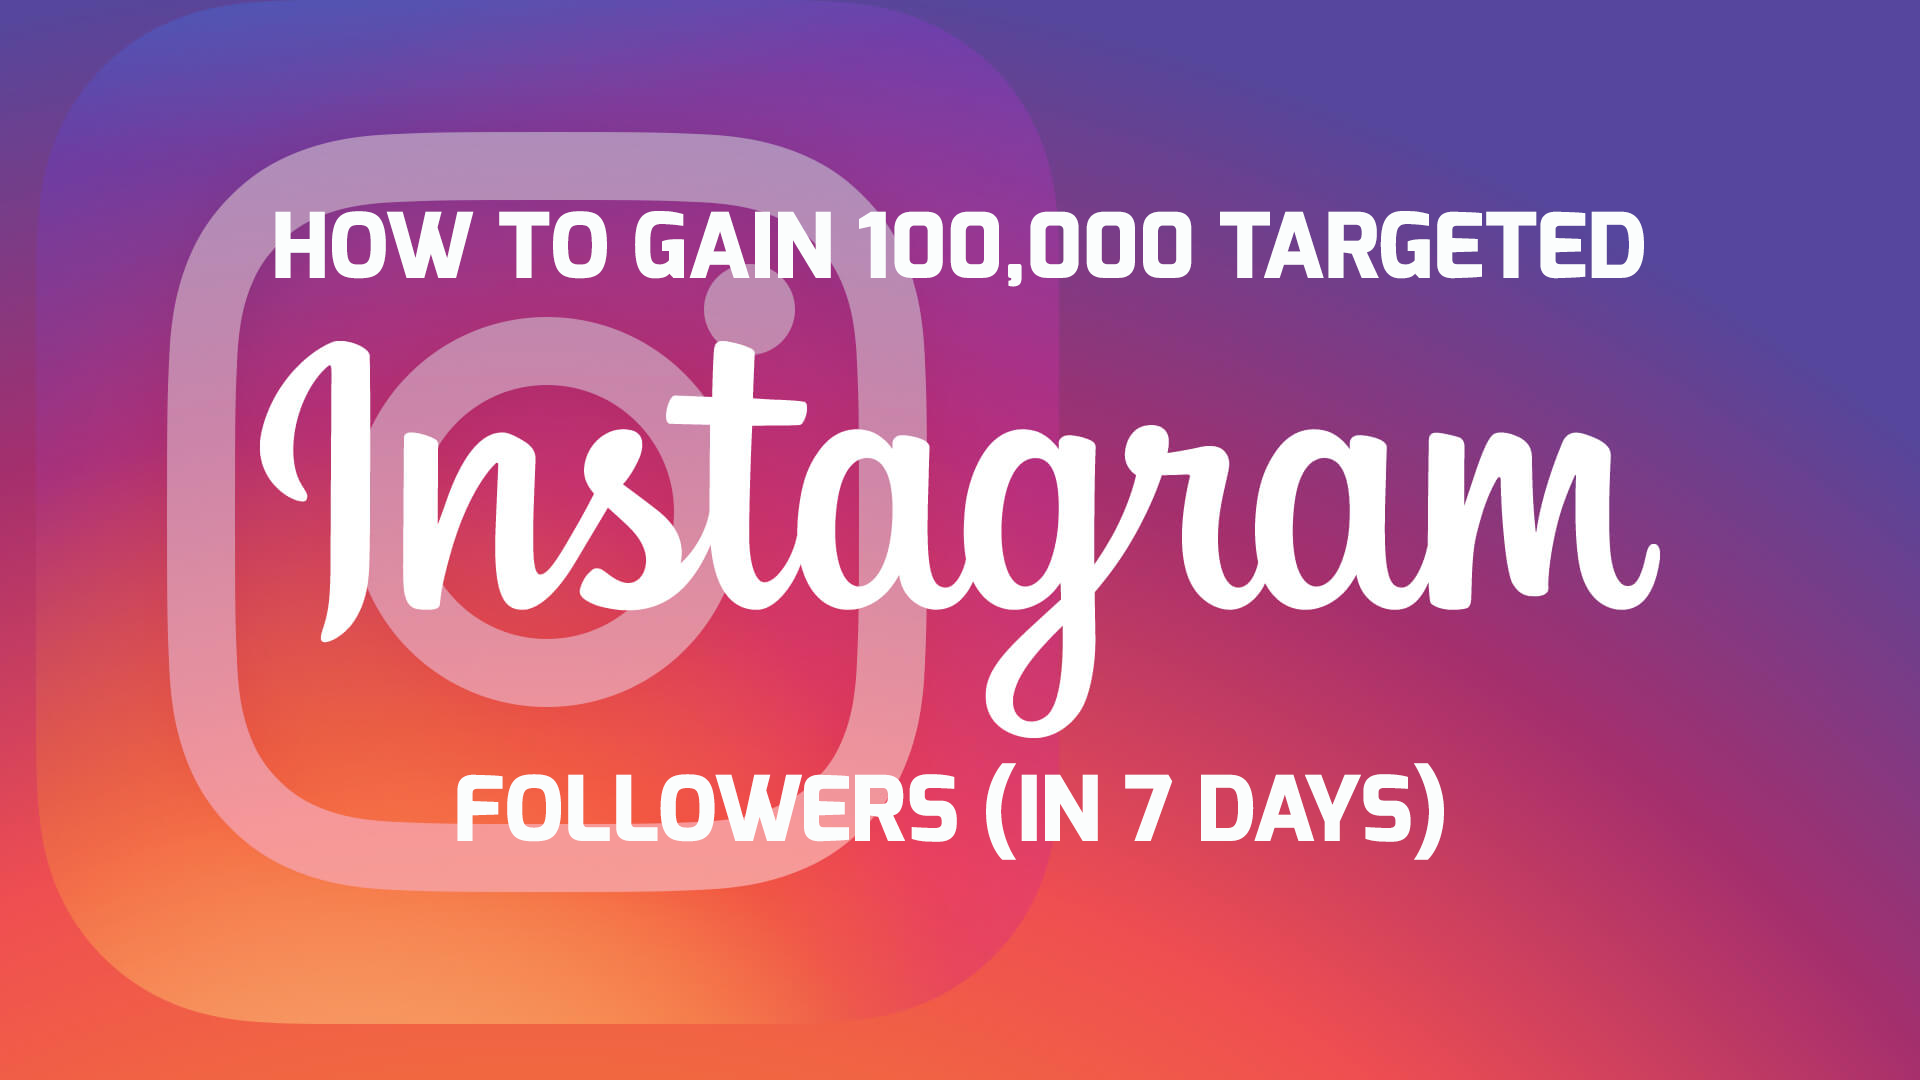 How To Gain 100,000 Targeted Instagram Followers (In 7 days)